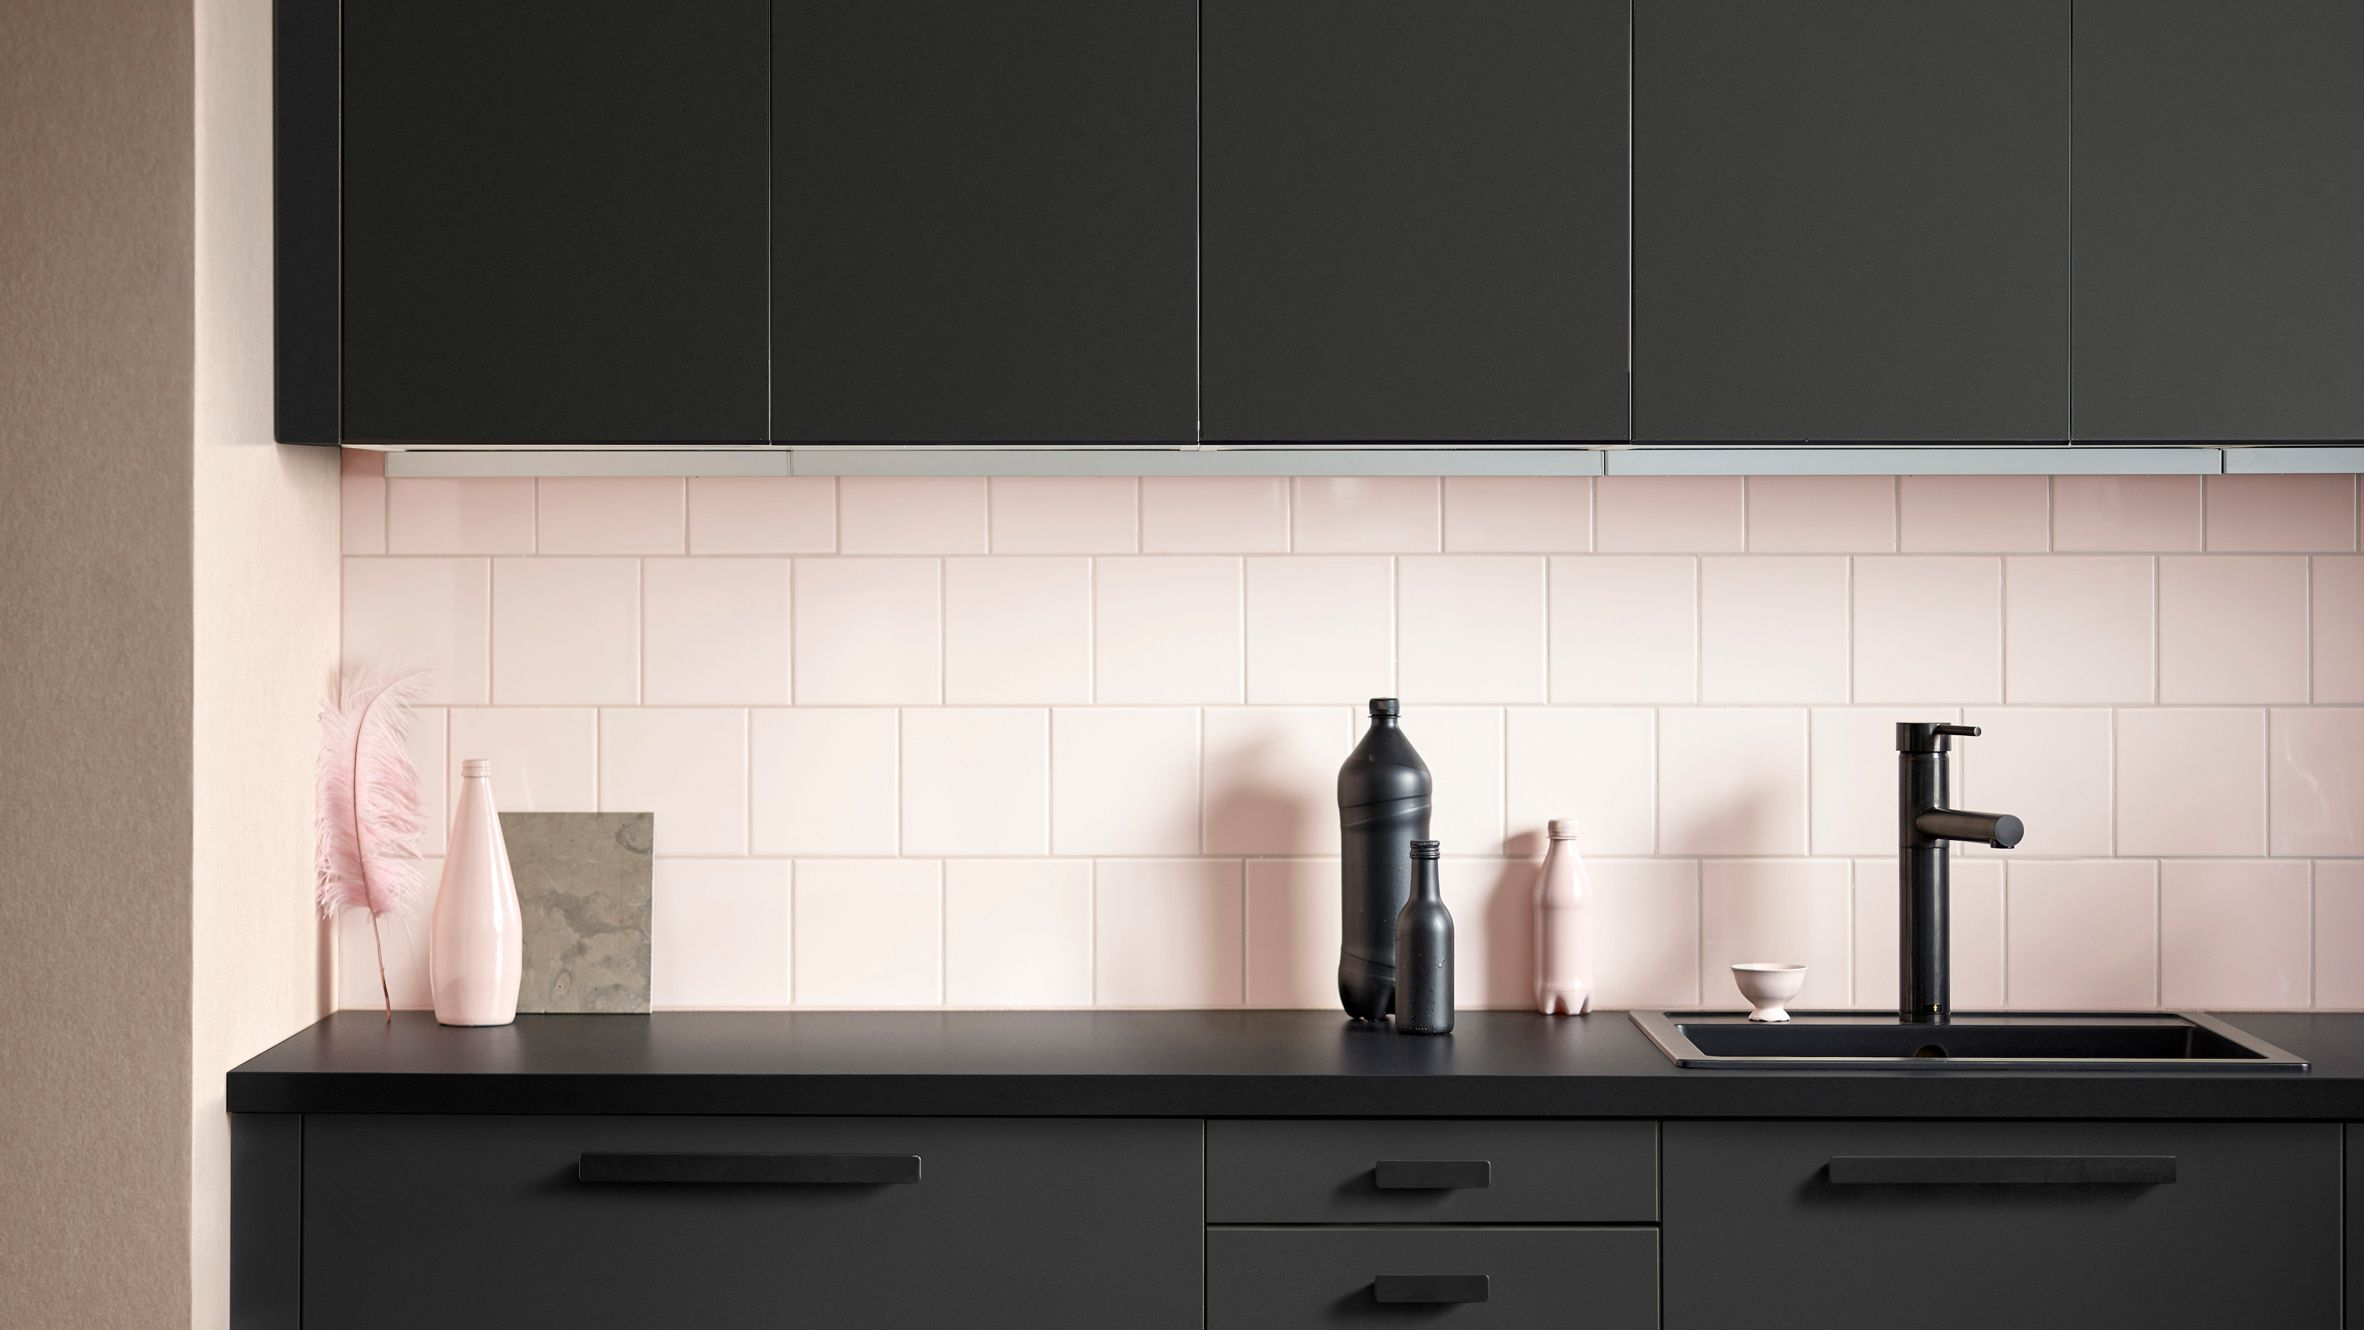 Ikea s new kitchen system is made from plastic bottles